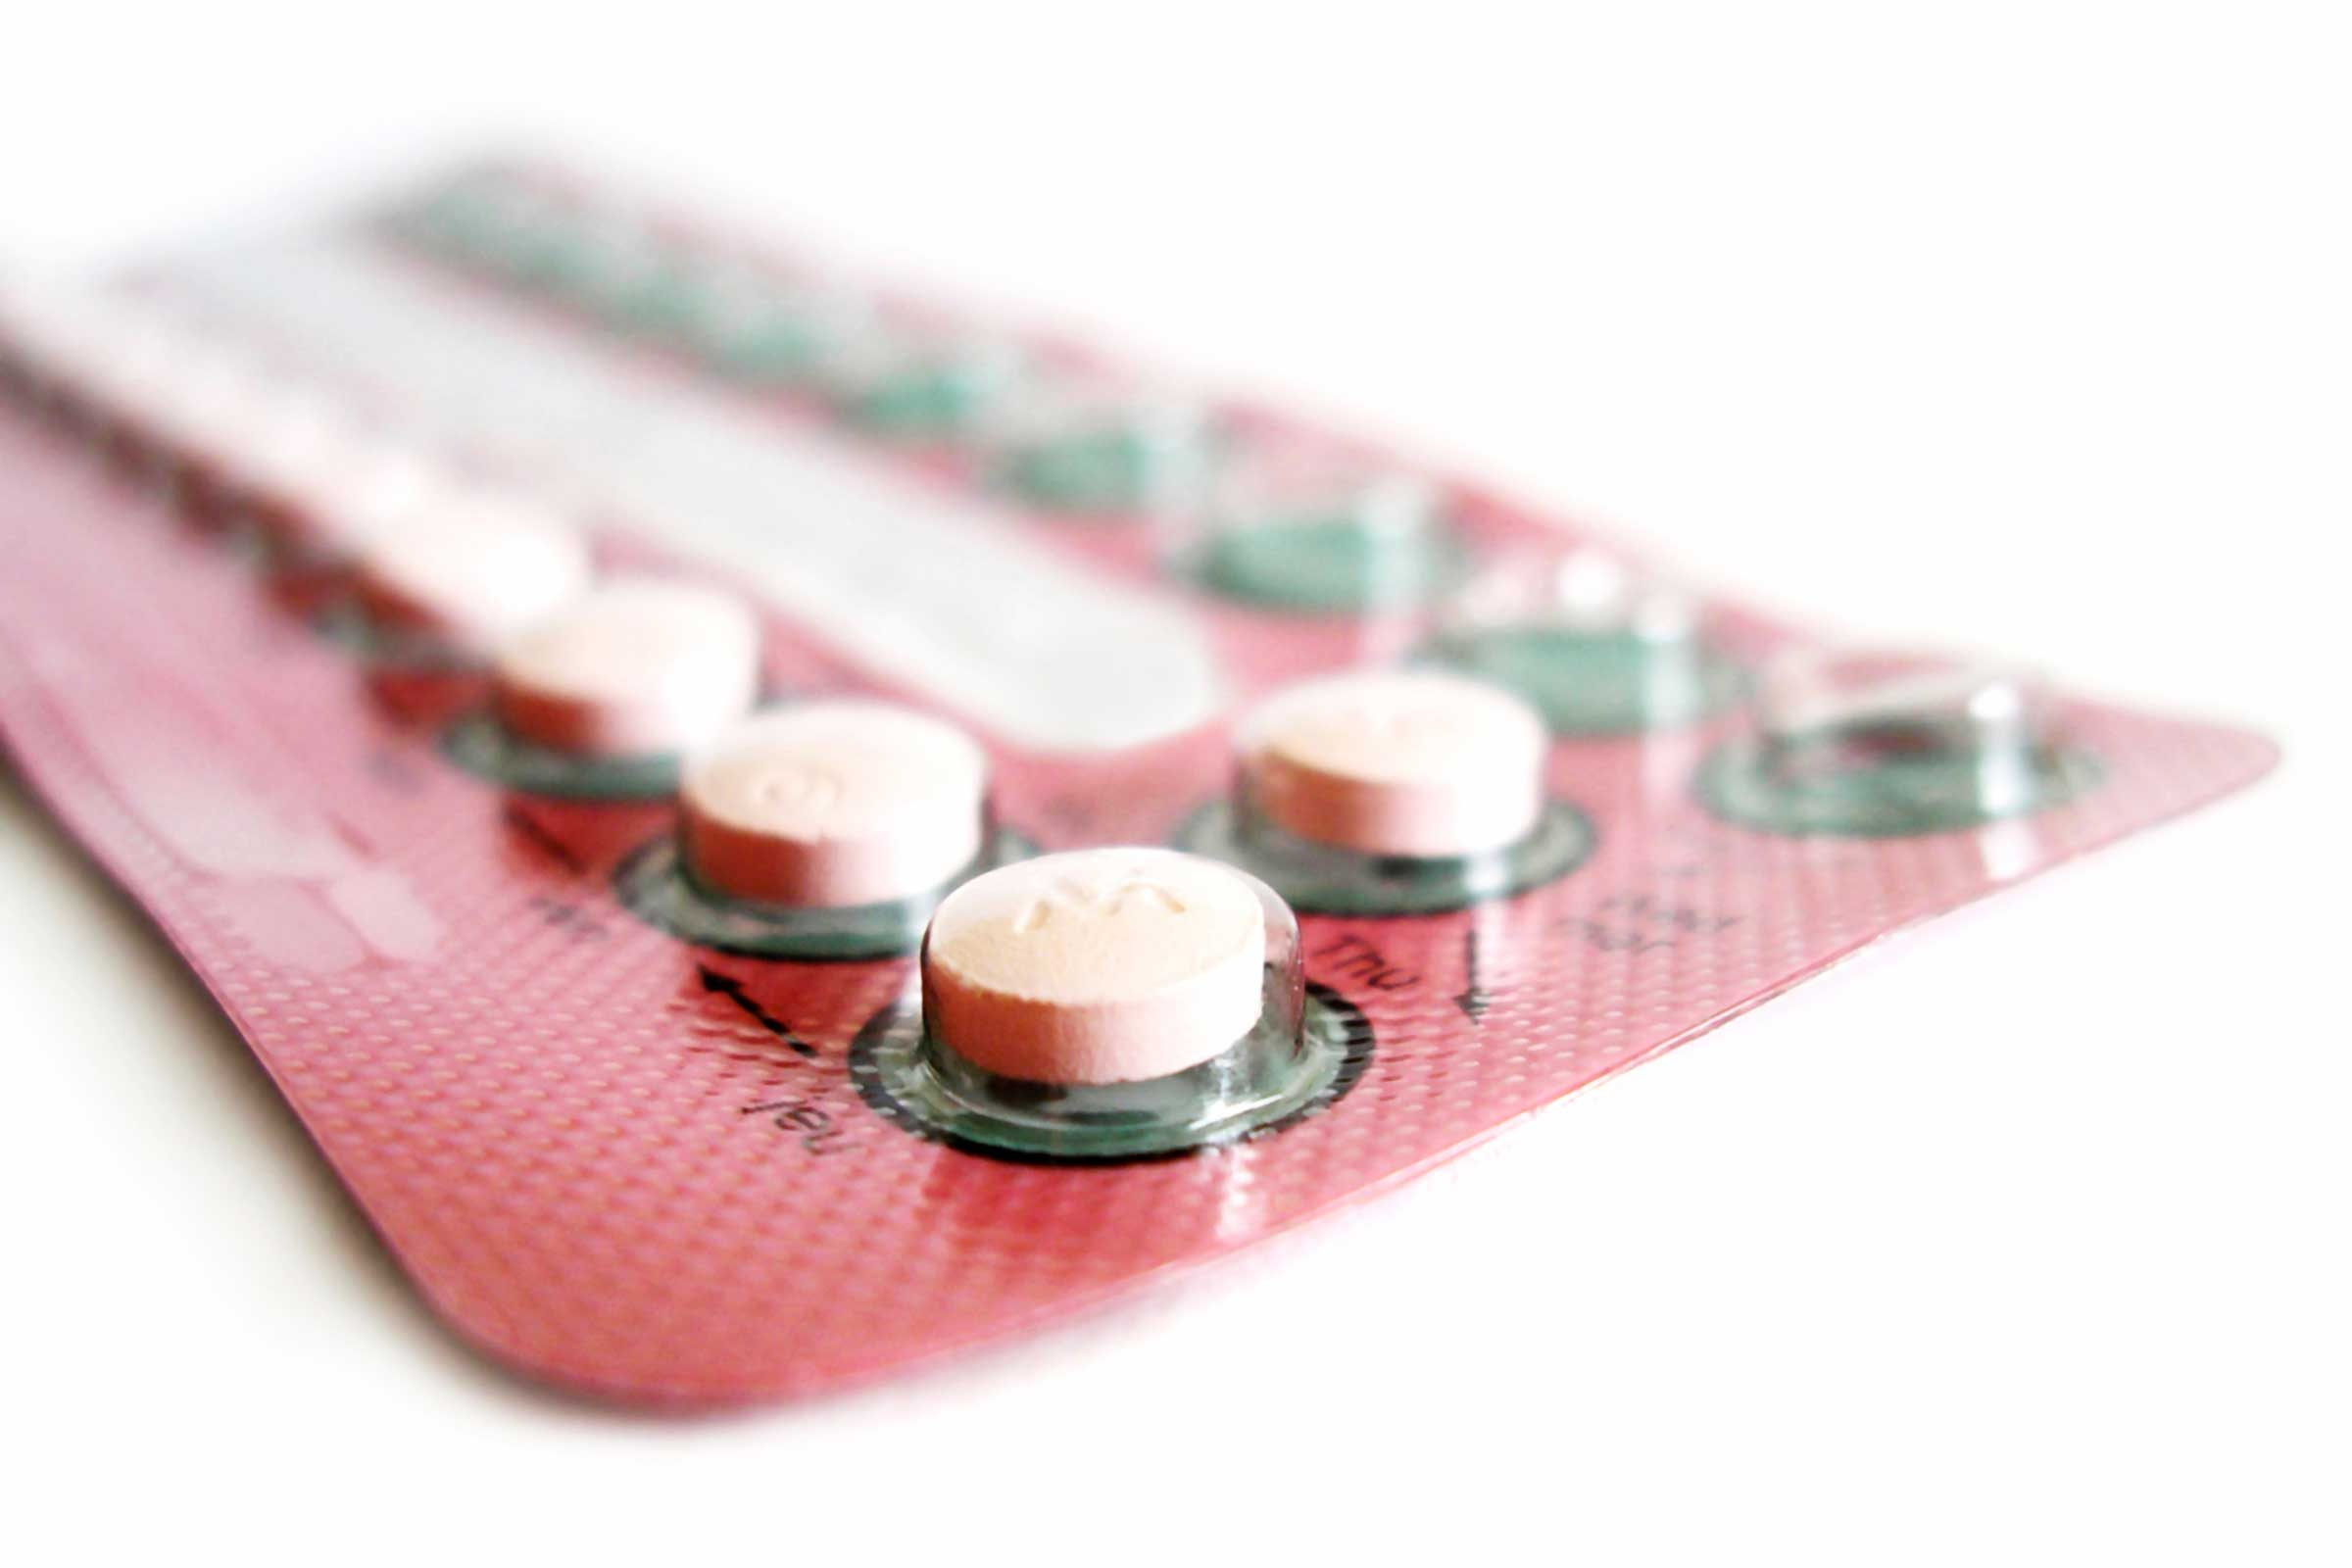 health myths gynecologists hear | birth control pills